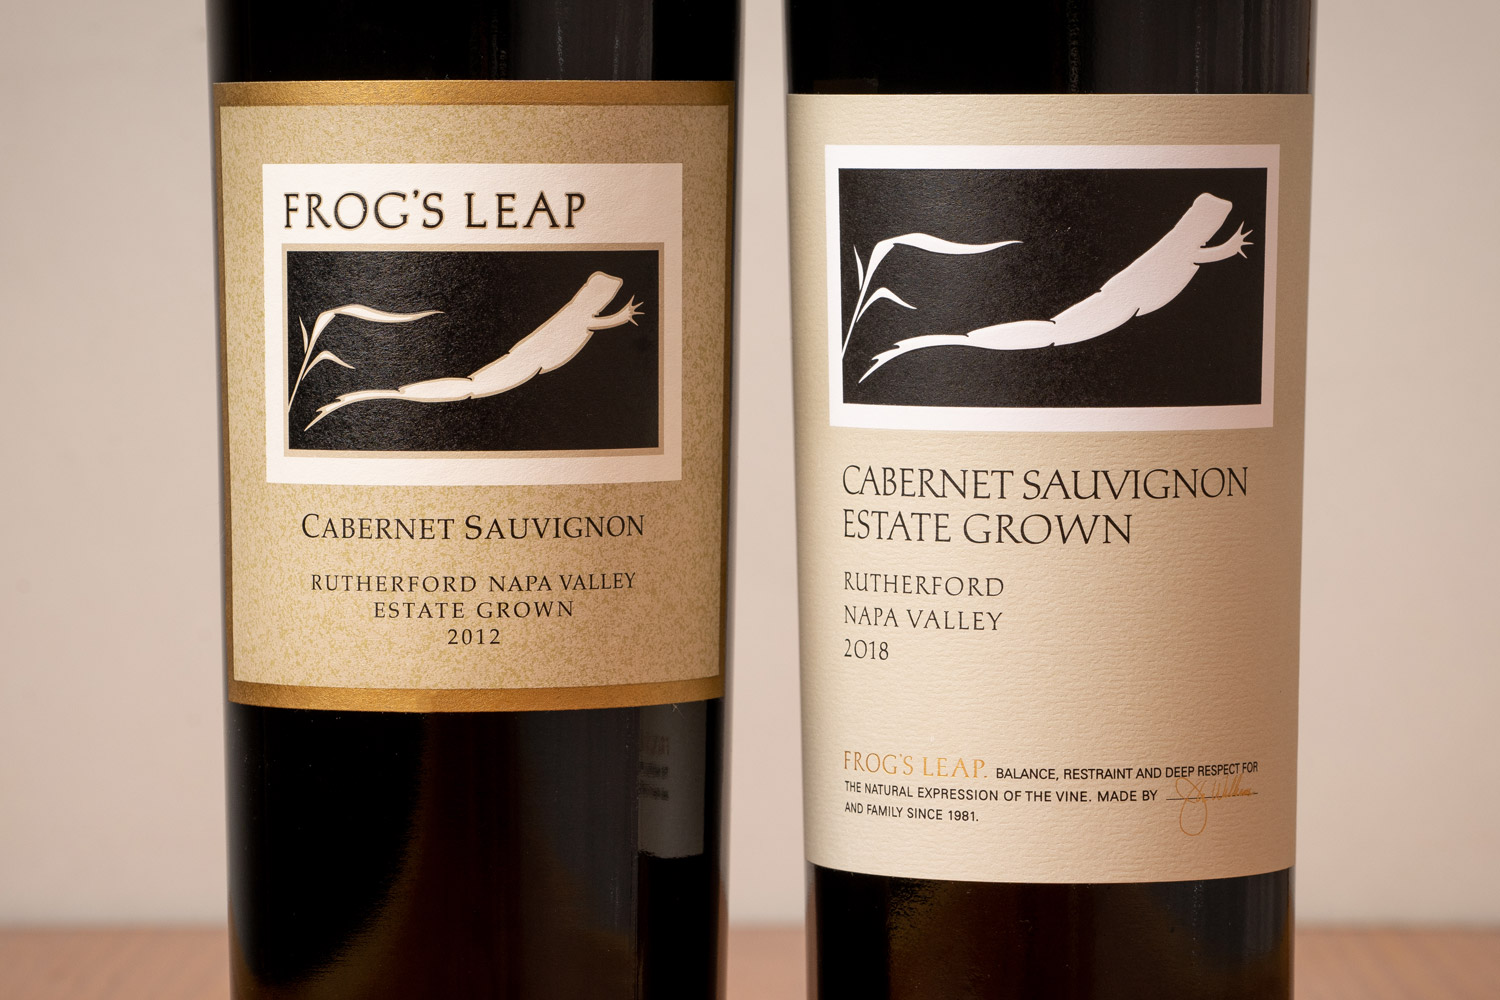 Frog's Leap Cabernet Sauvignon Label before and after